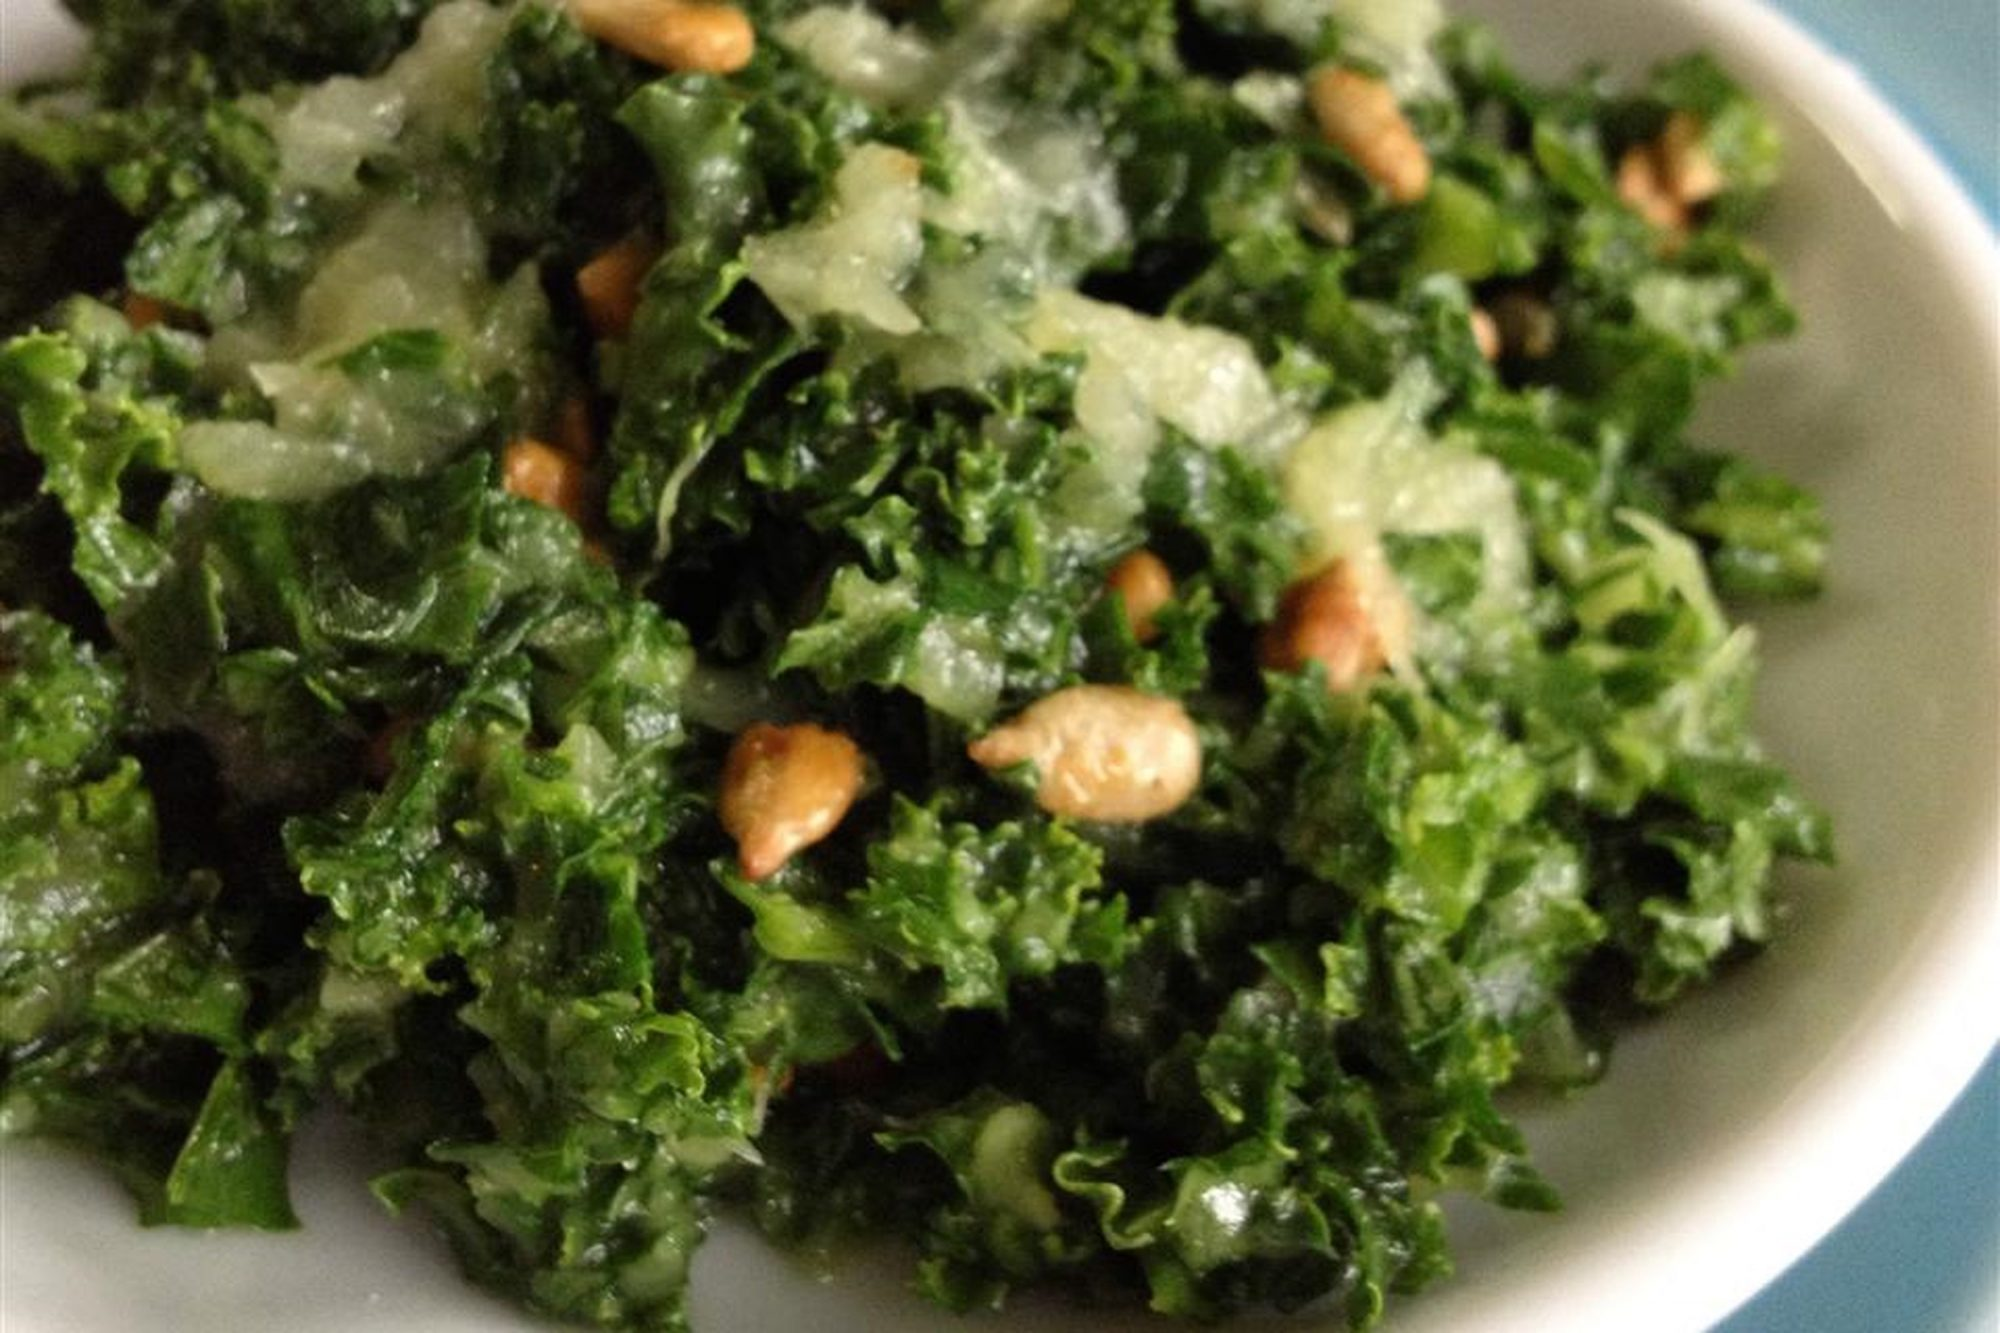 Kale Salad with Pineapple Dressing